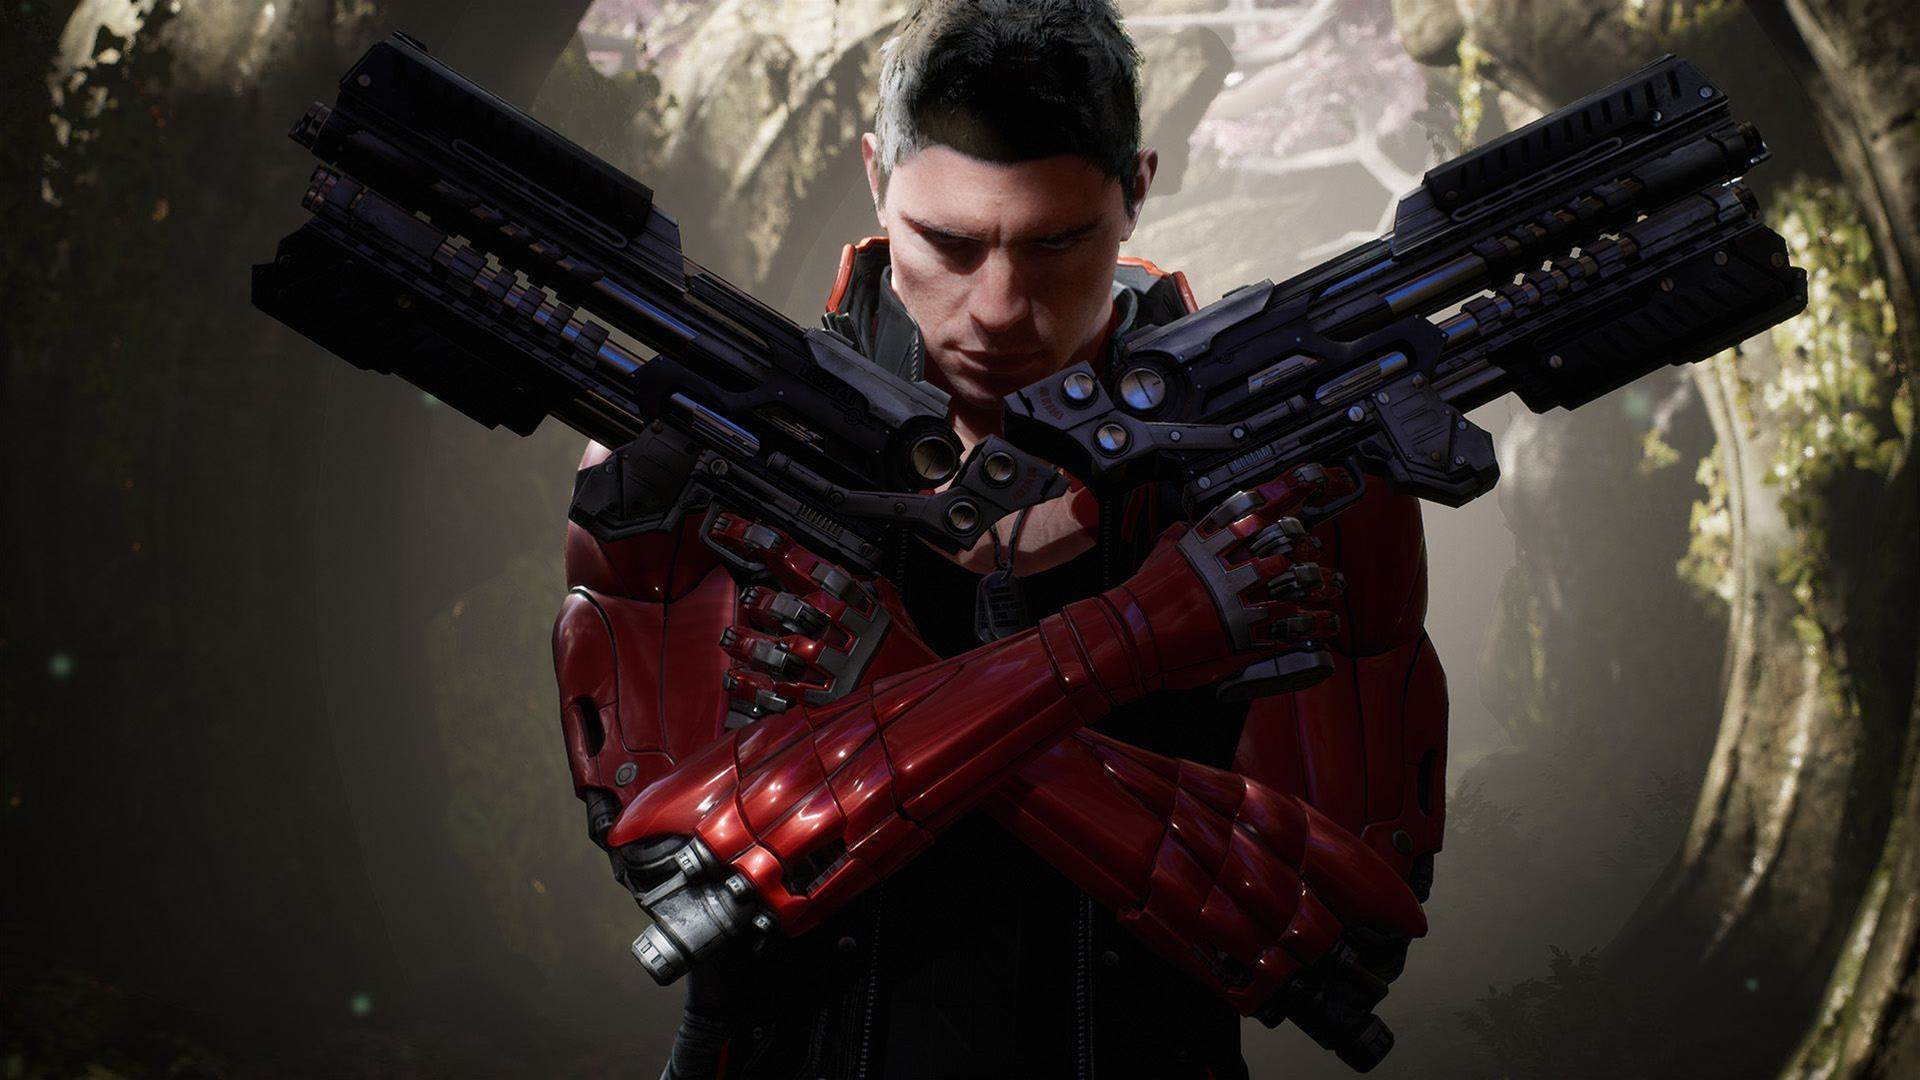 A crit-attack of Paragon screenshots